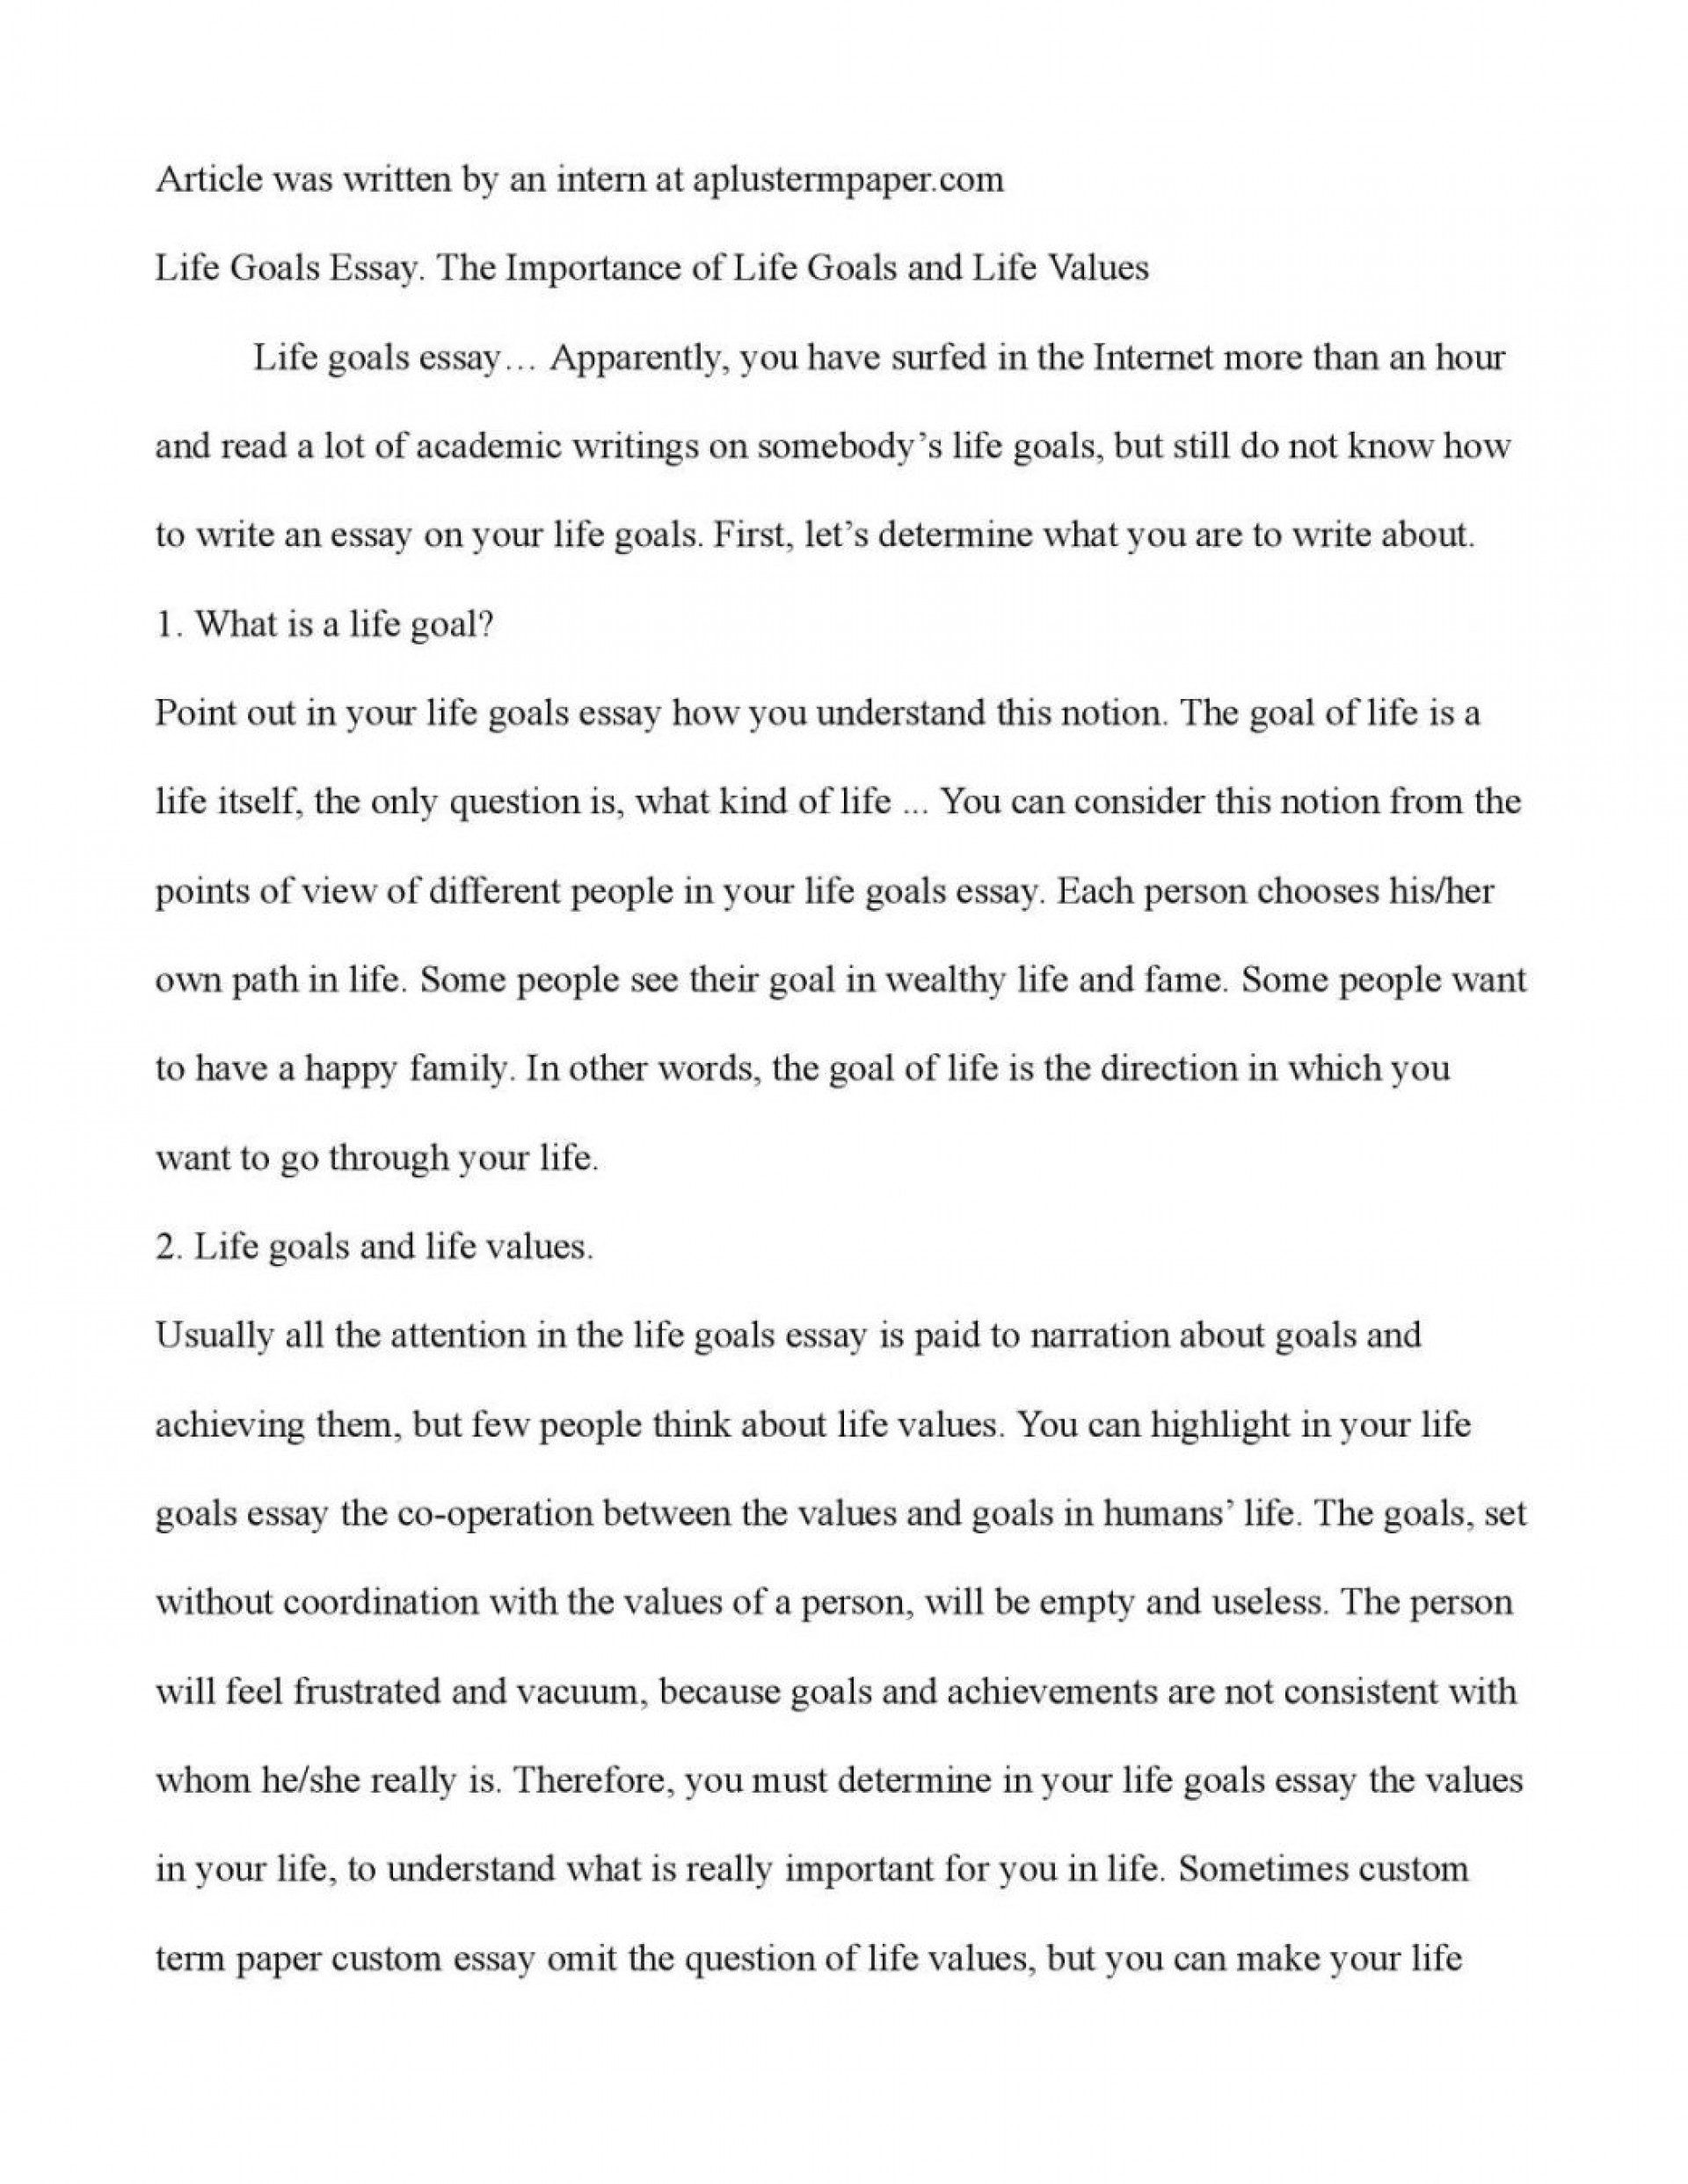 014 Essay Example Life Goals Narrative On Achieving Goal My Purpose In Exampl Examples Ambition 1048x1356 Wondrous Of Conclusion How To Have A Driven Can I 1920